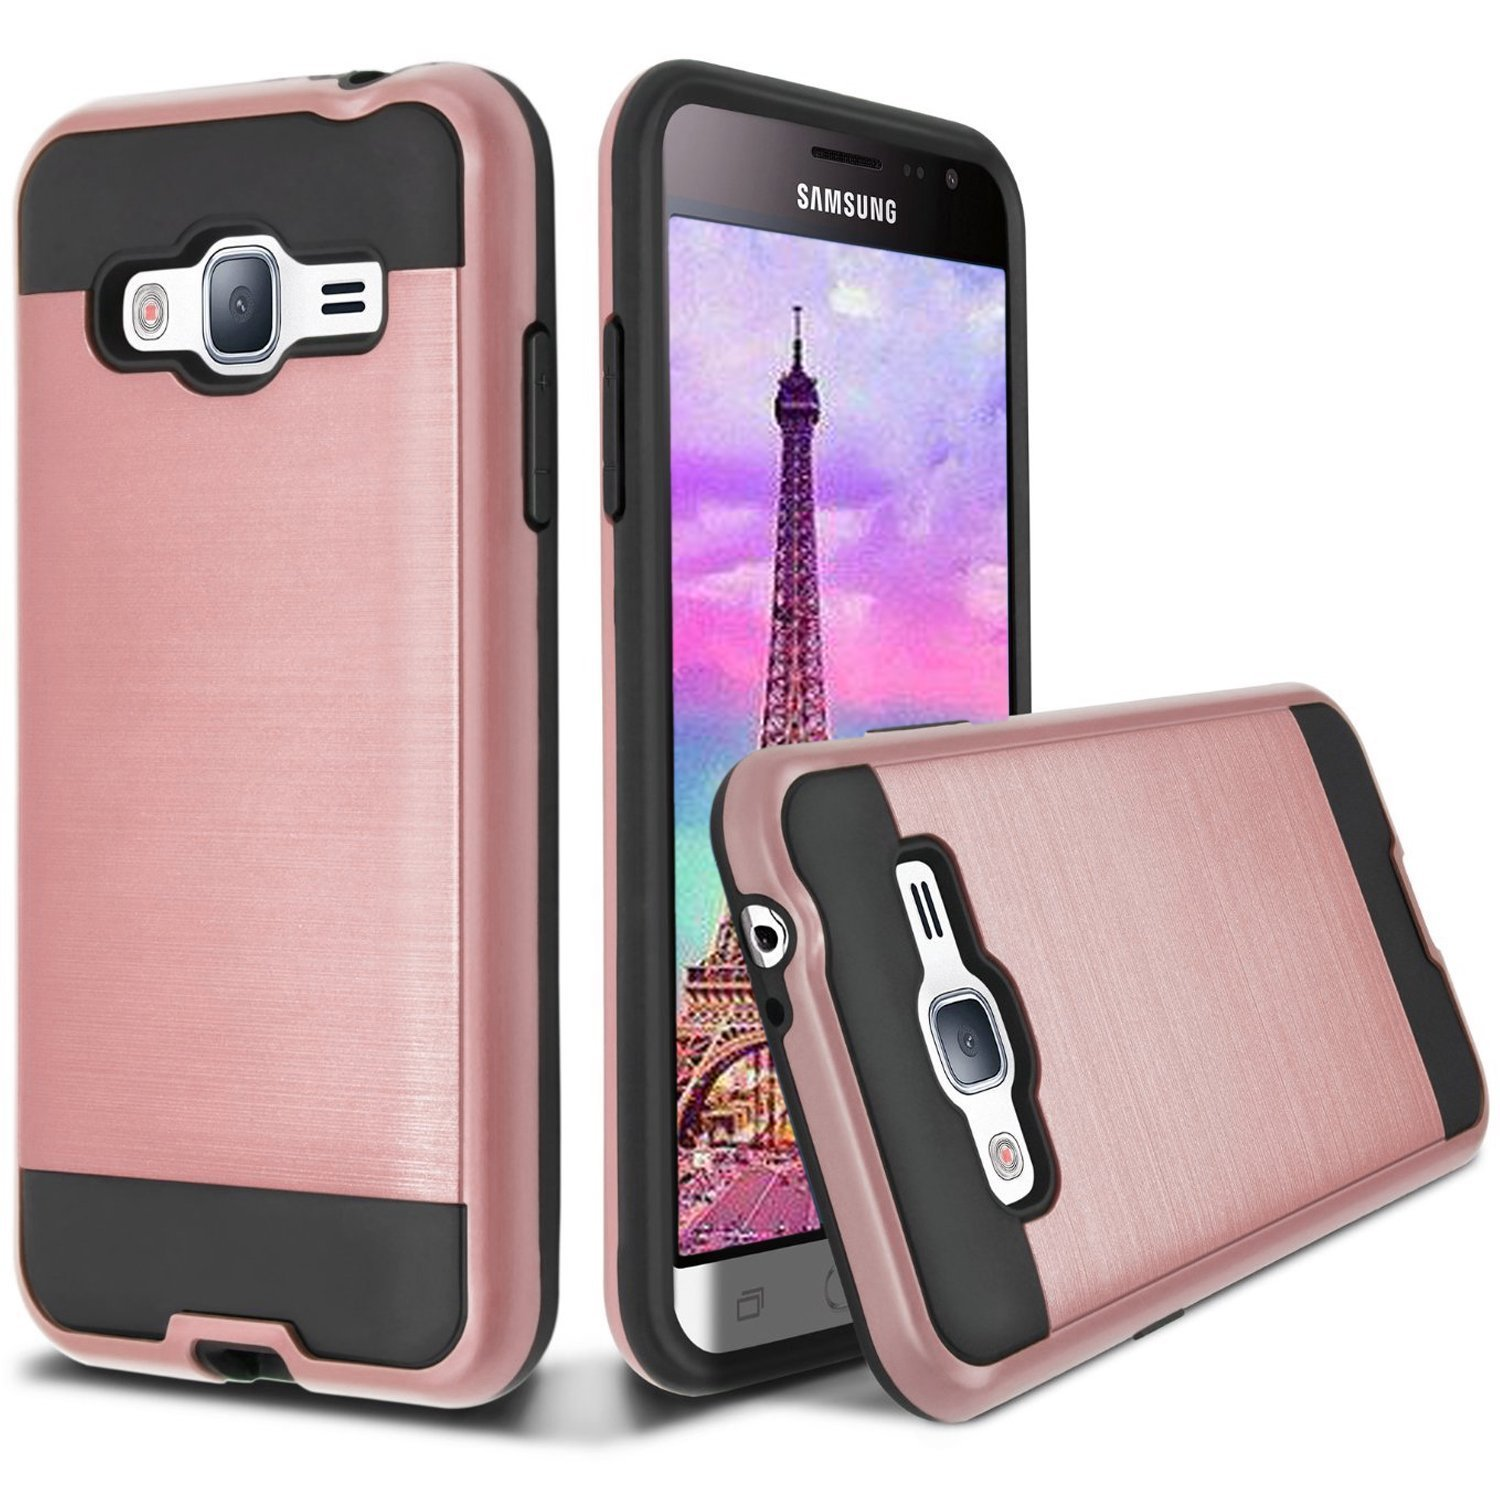 Top 10 Best Samsung Galaxy J7 Cases And Covers Best Cases Covers